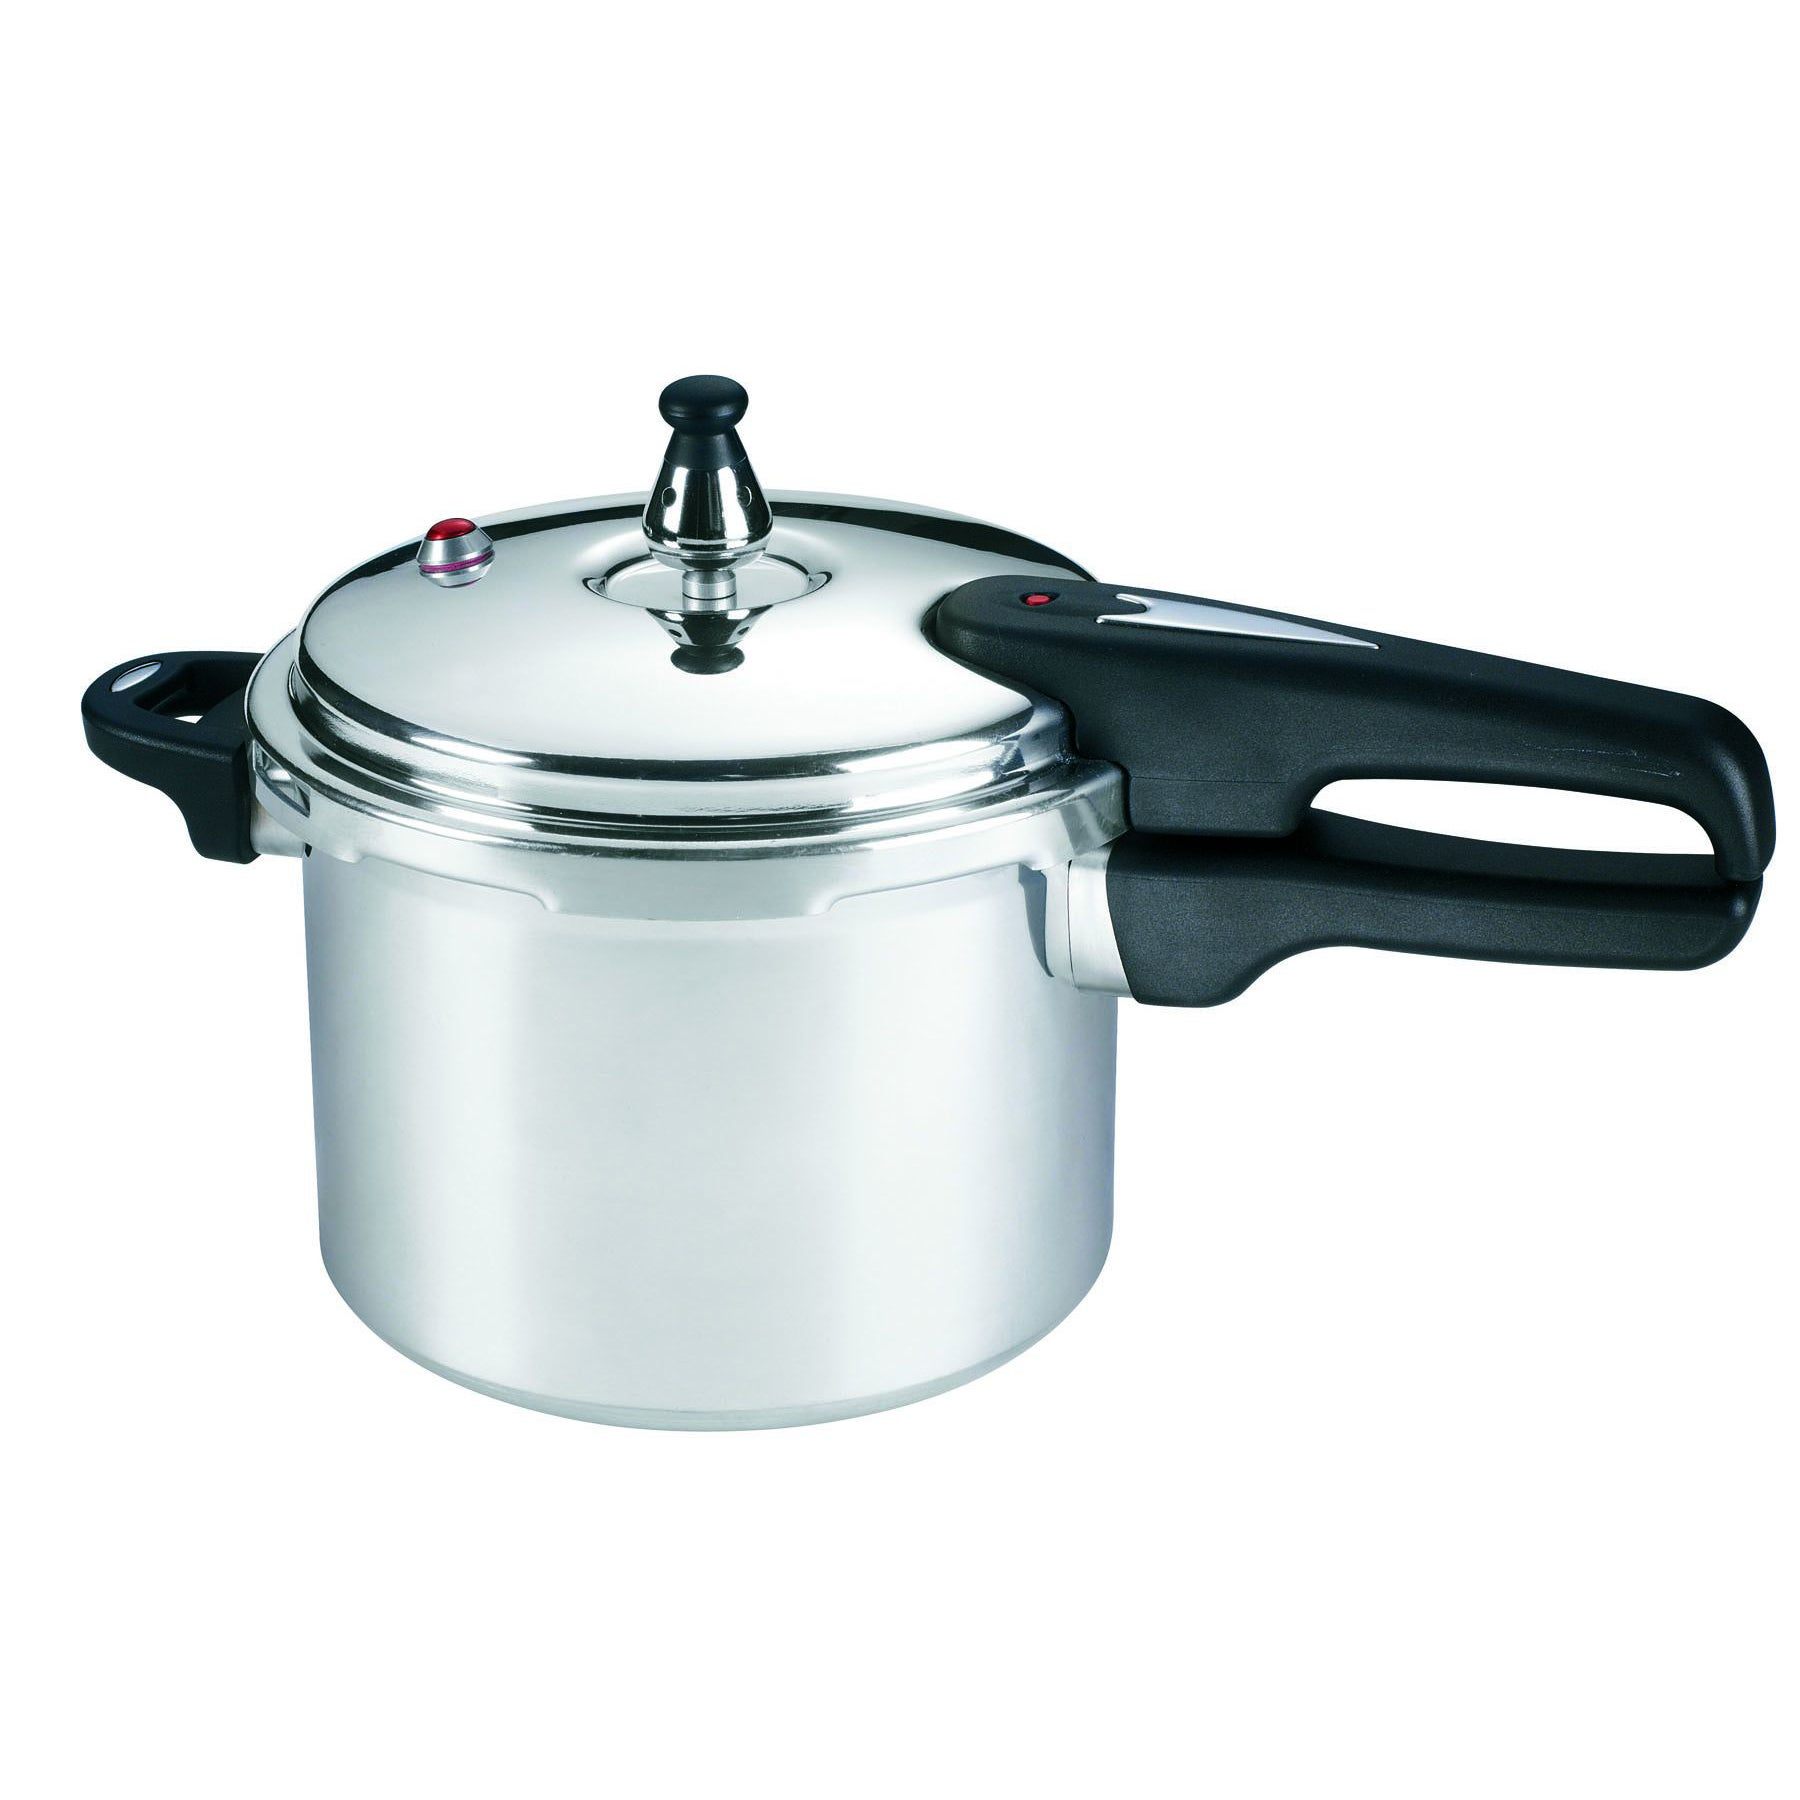 T-Fal 4-quart Pressure Cooker at Sears.com